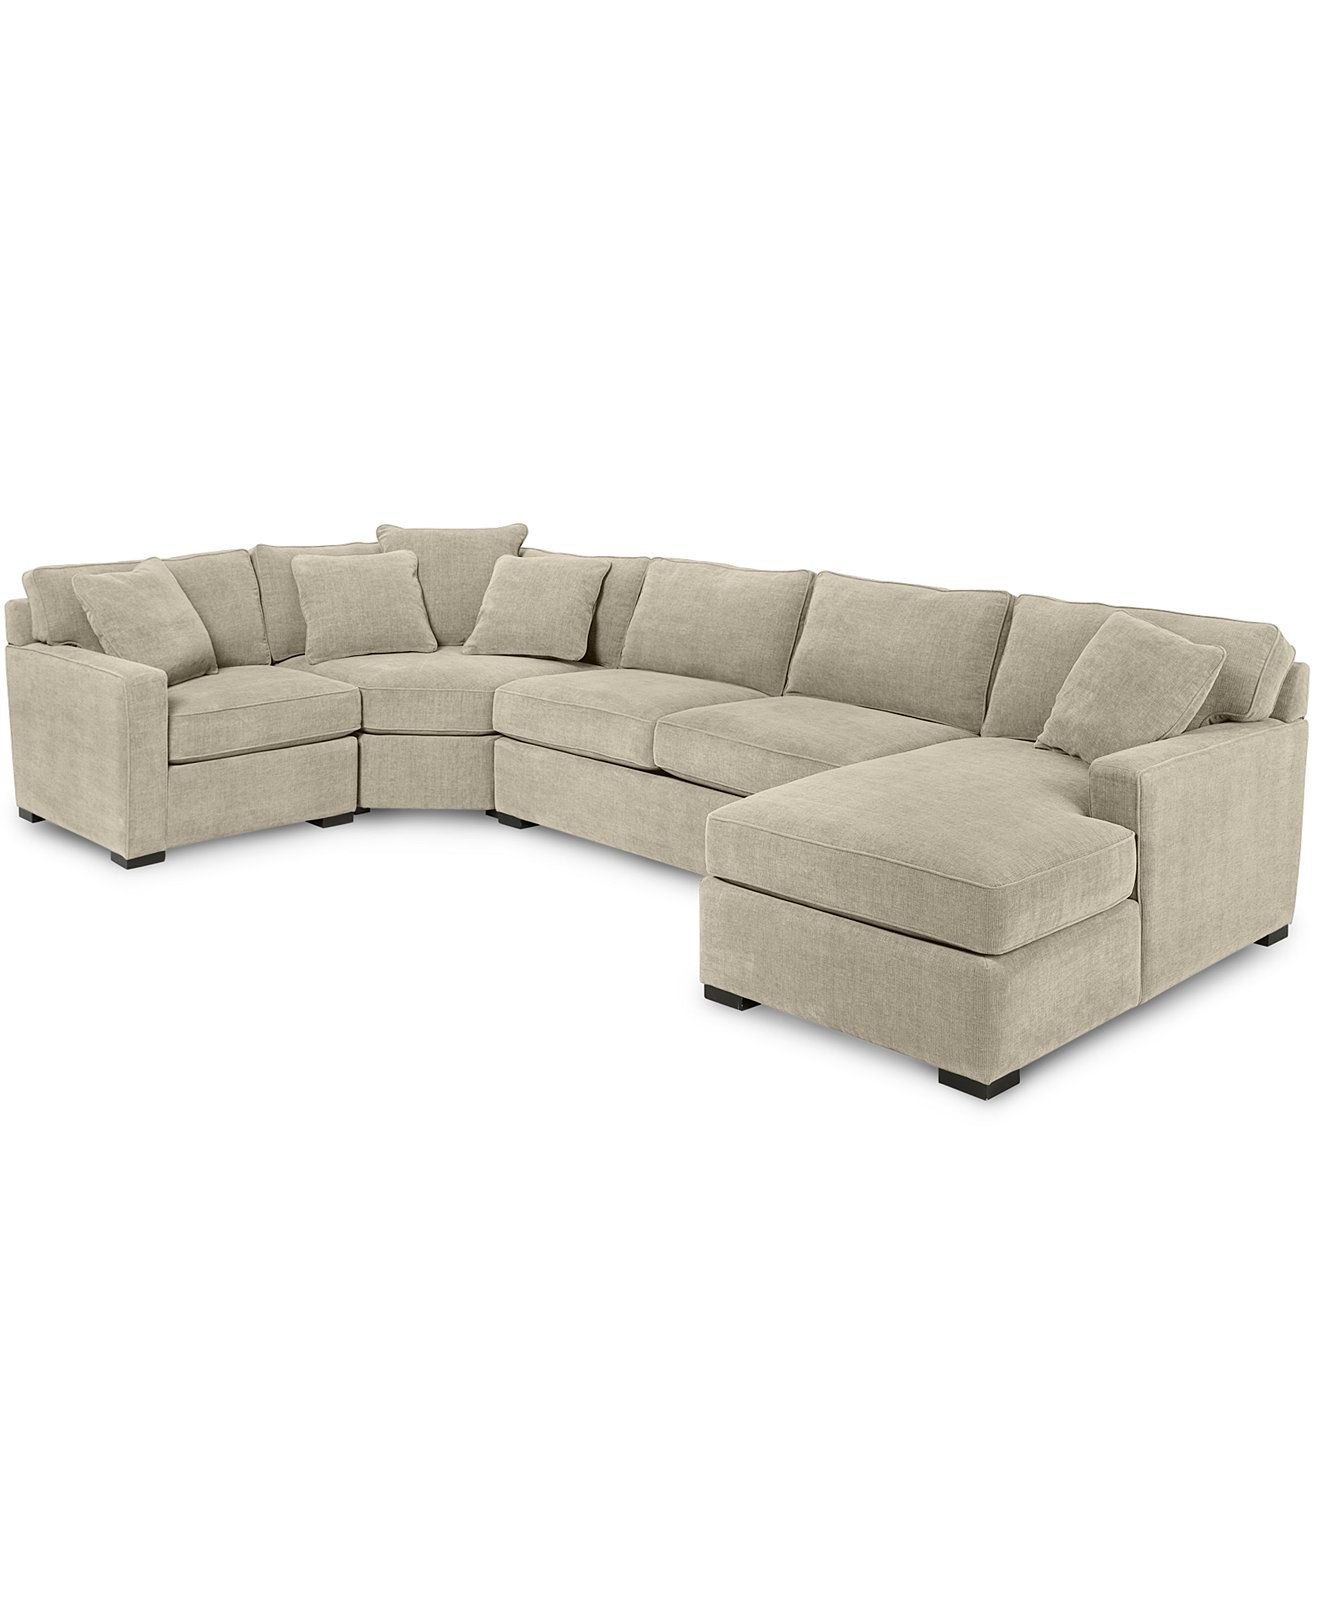 Couches 4 Radley 4 Piece Fabric Chaise Sectional Sofa Created For Macy S